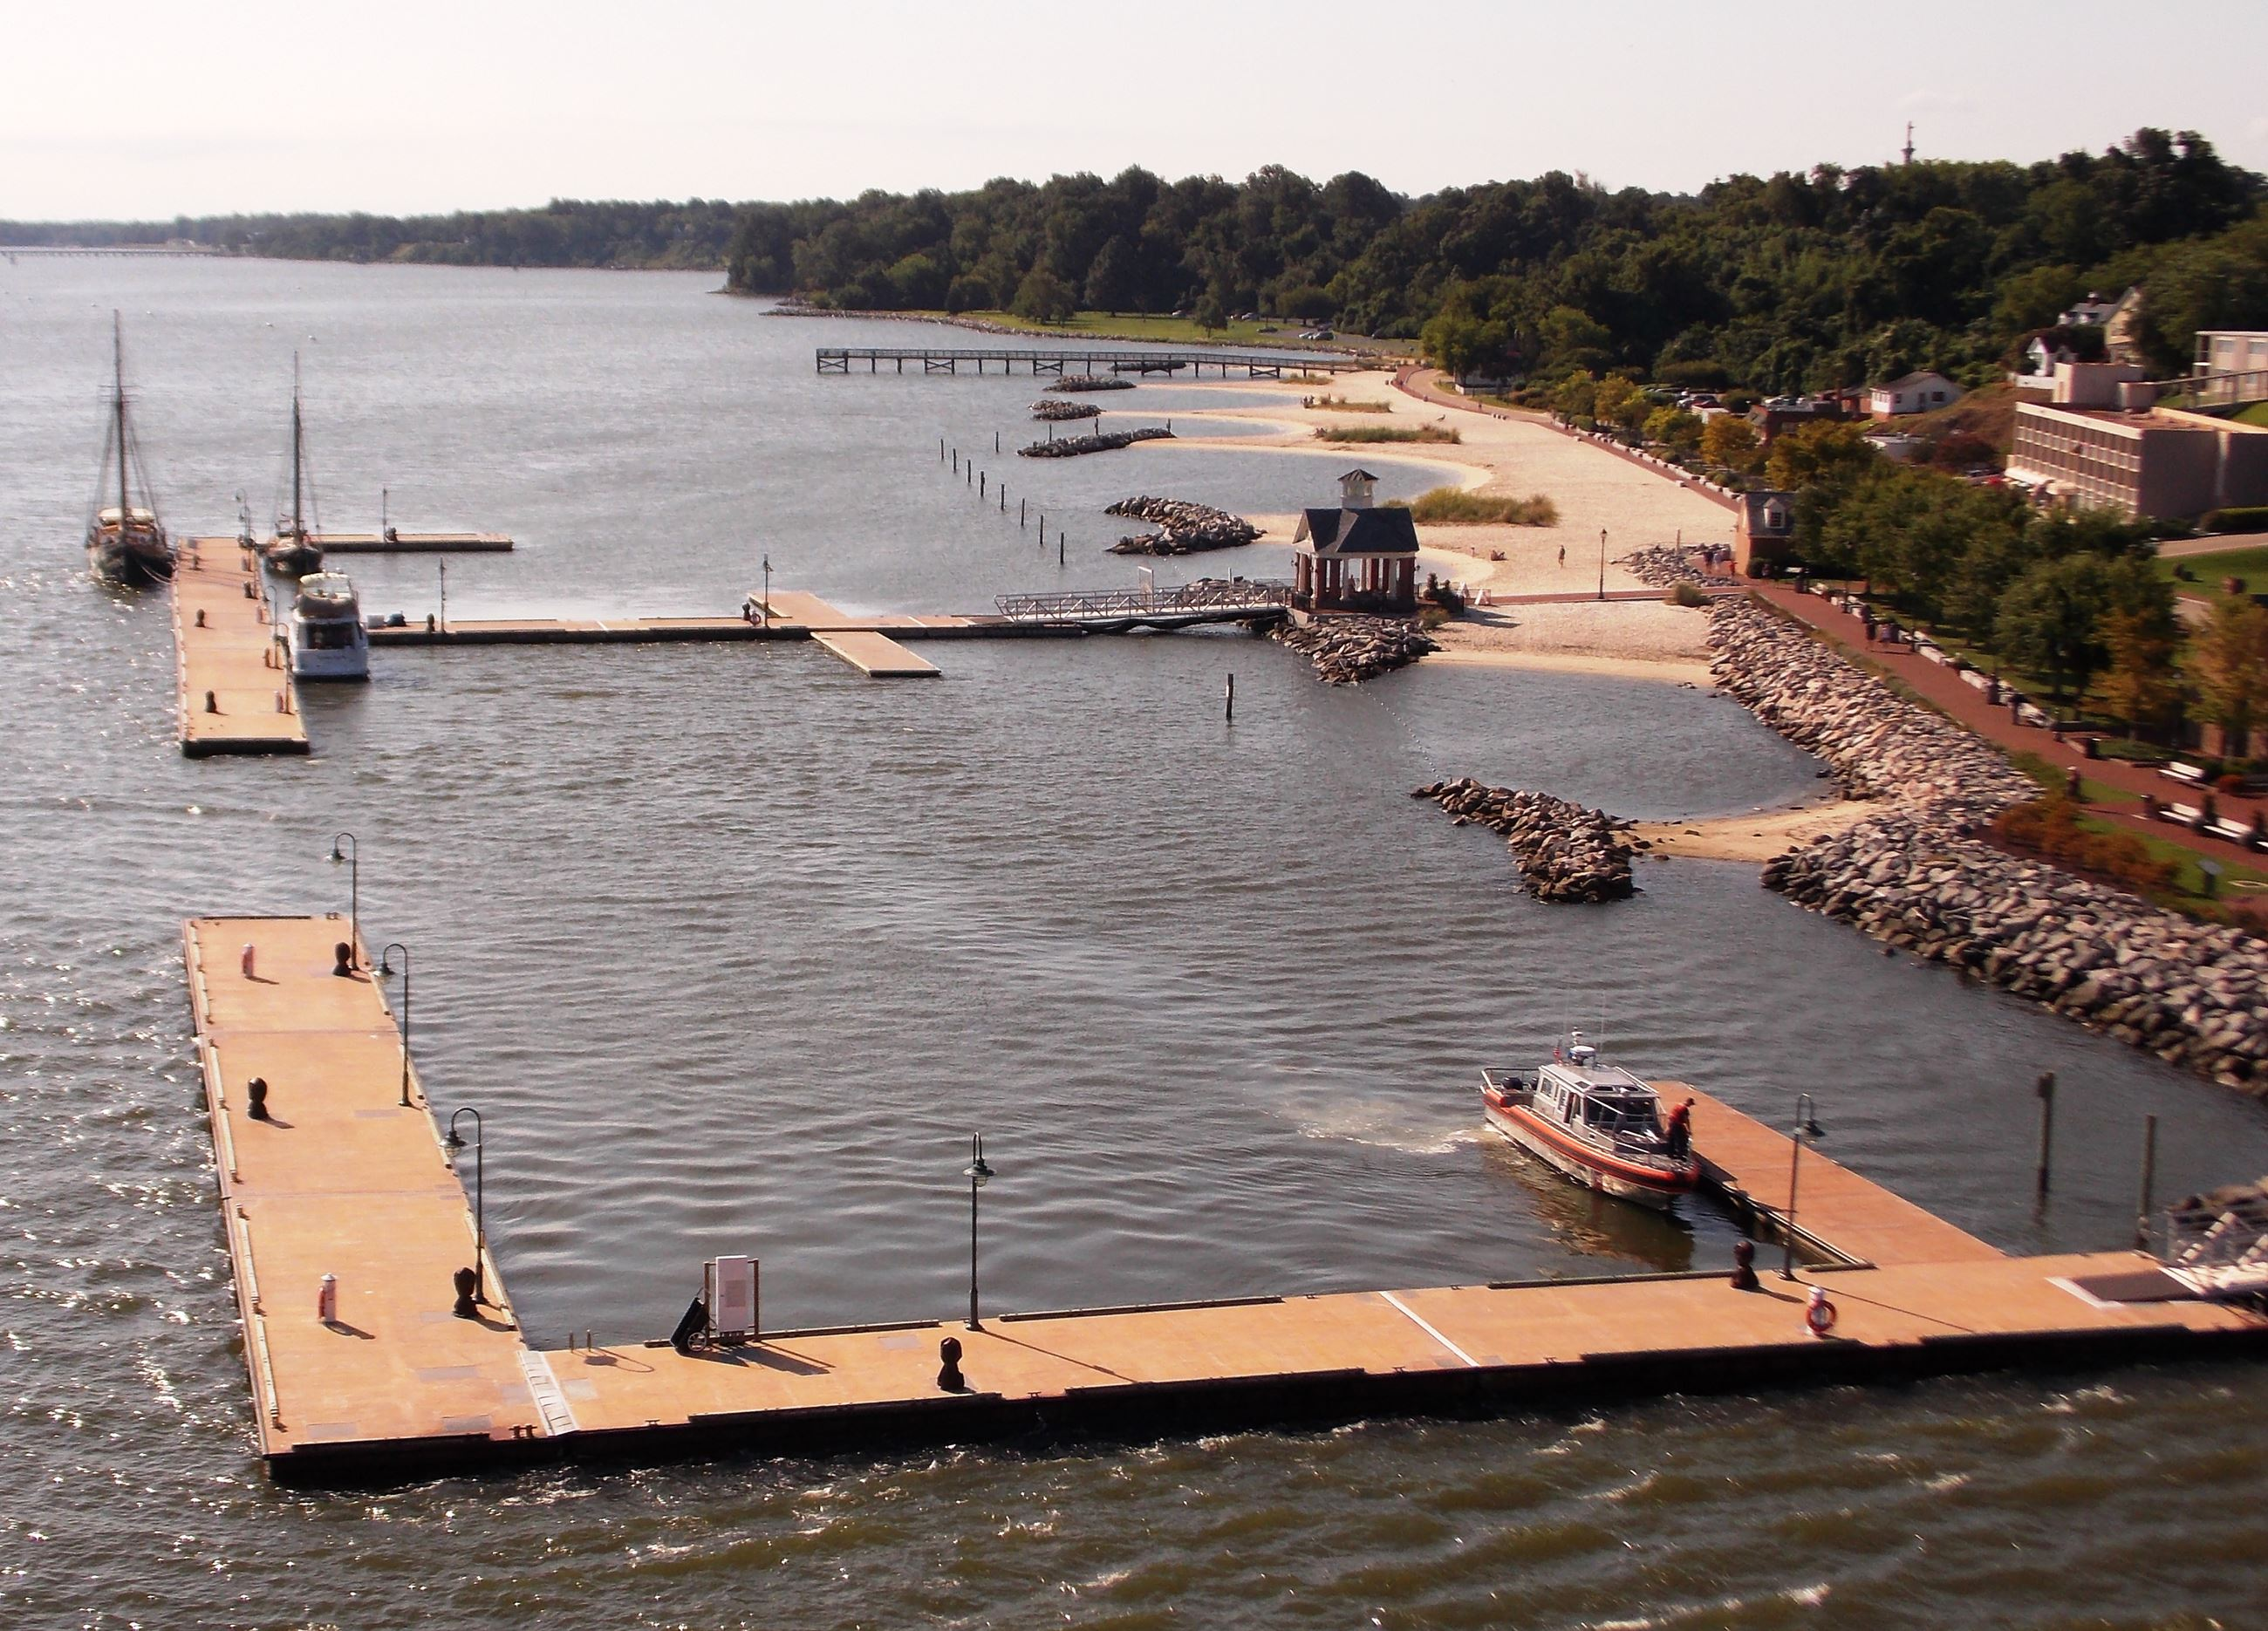 Yorktown Beach and Docks